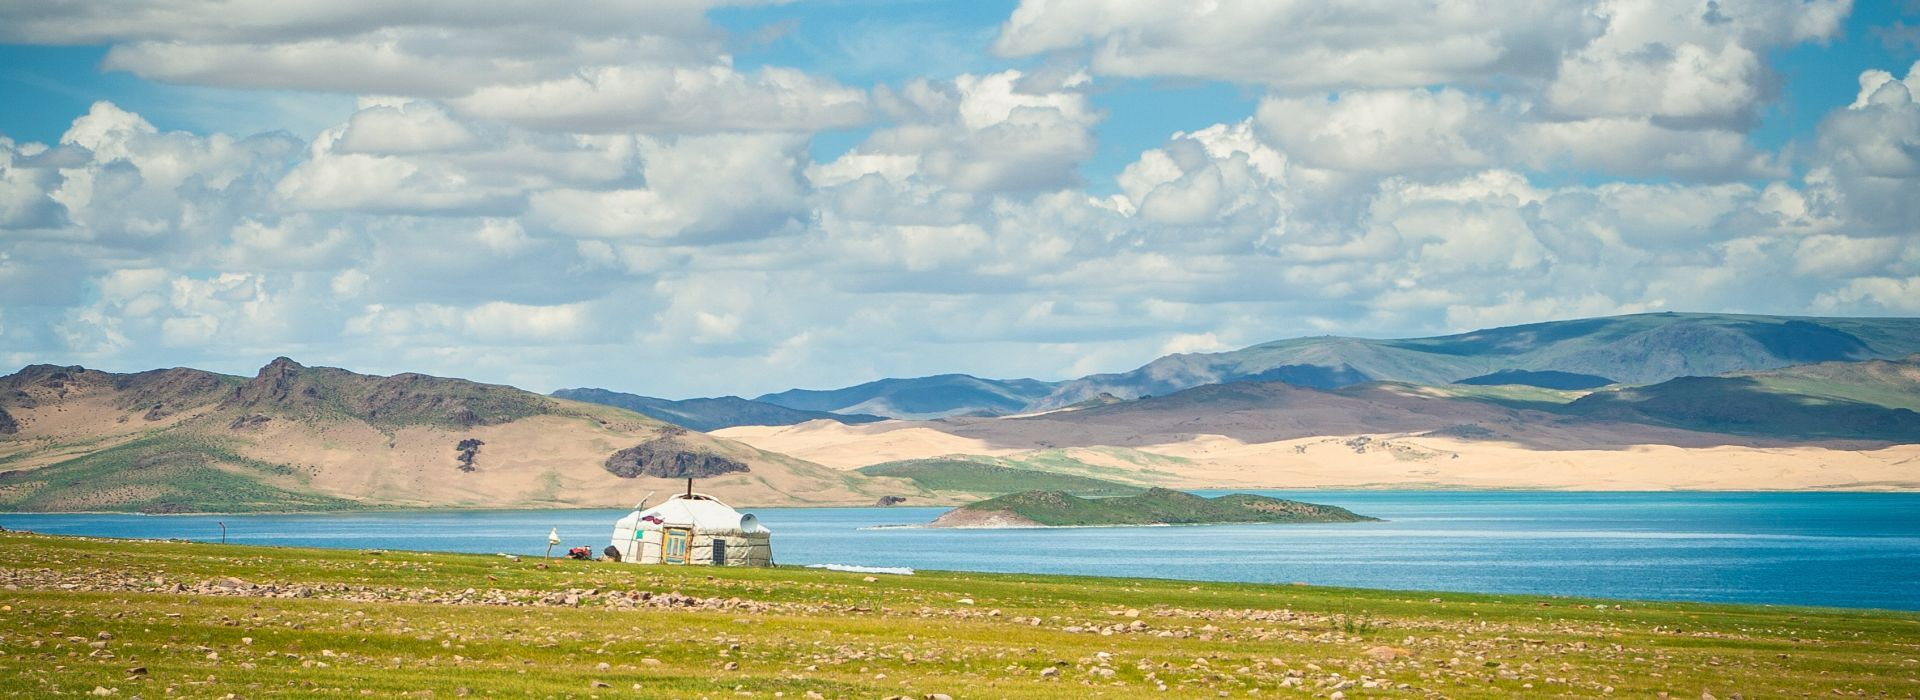 National parks Tours in Ulaanbaatar